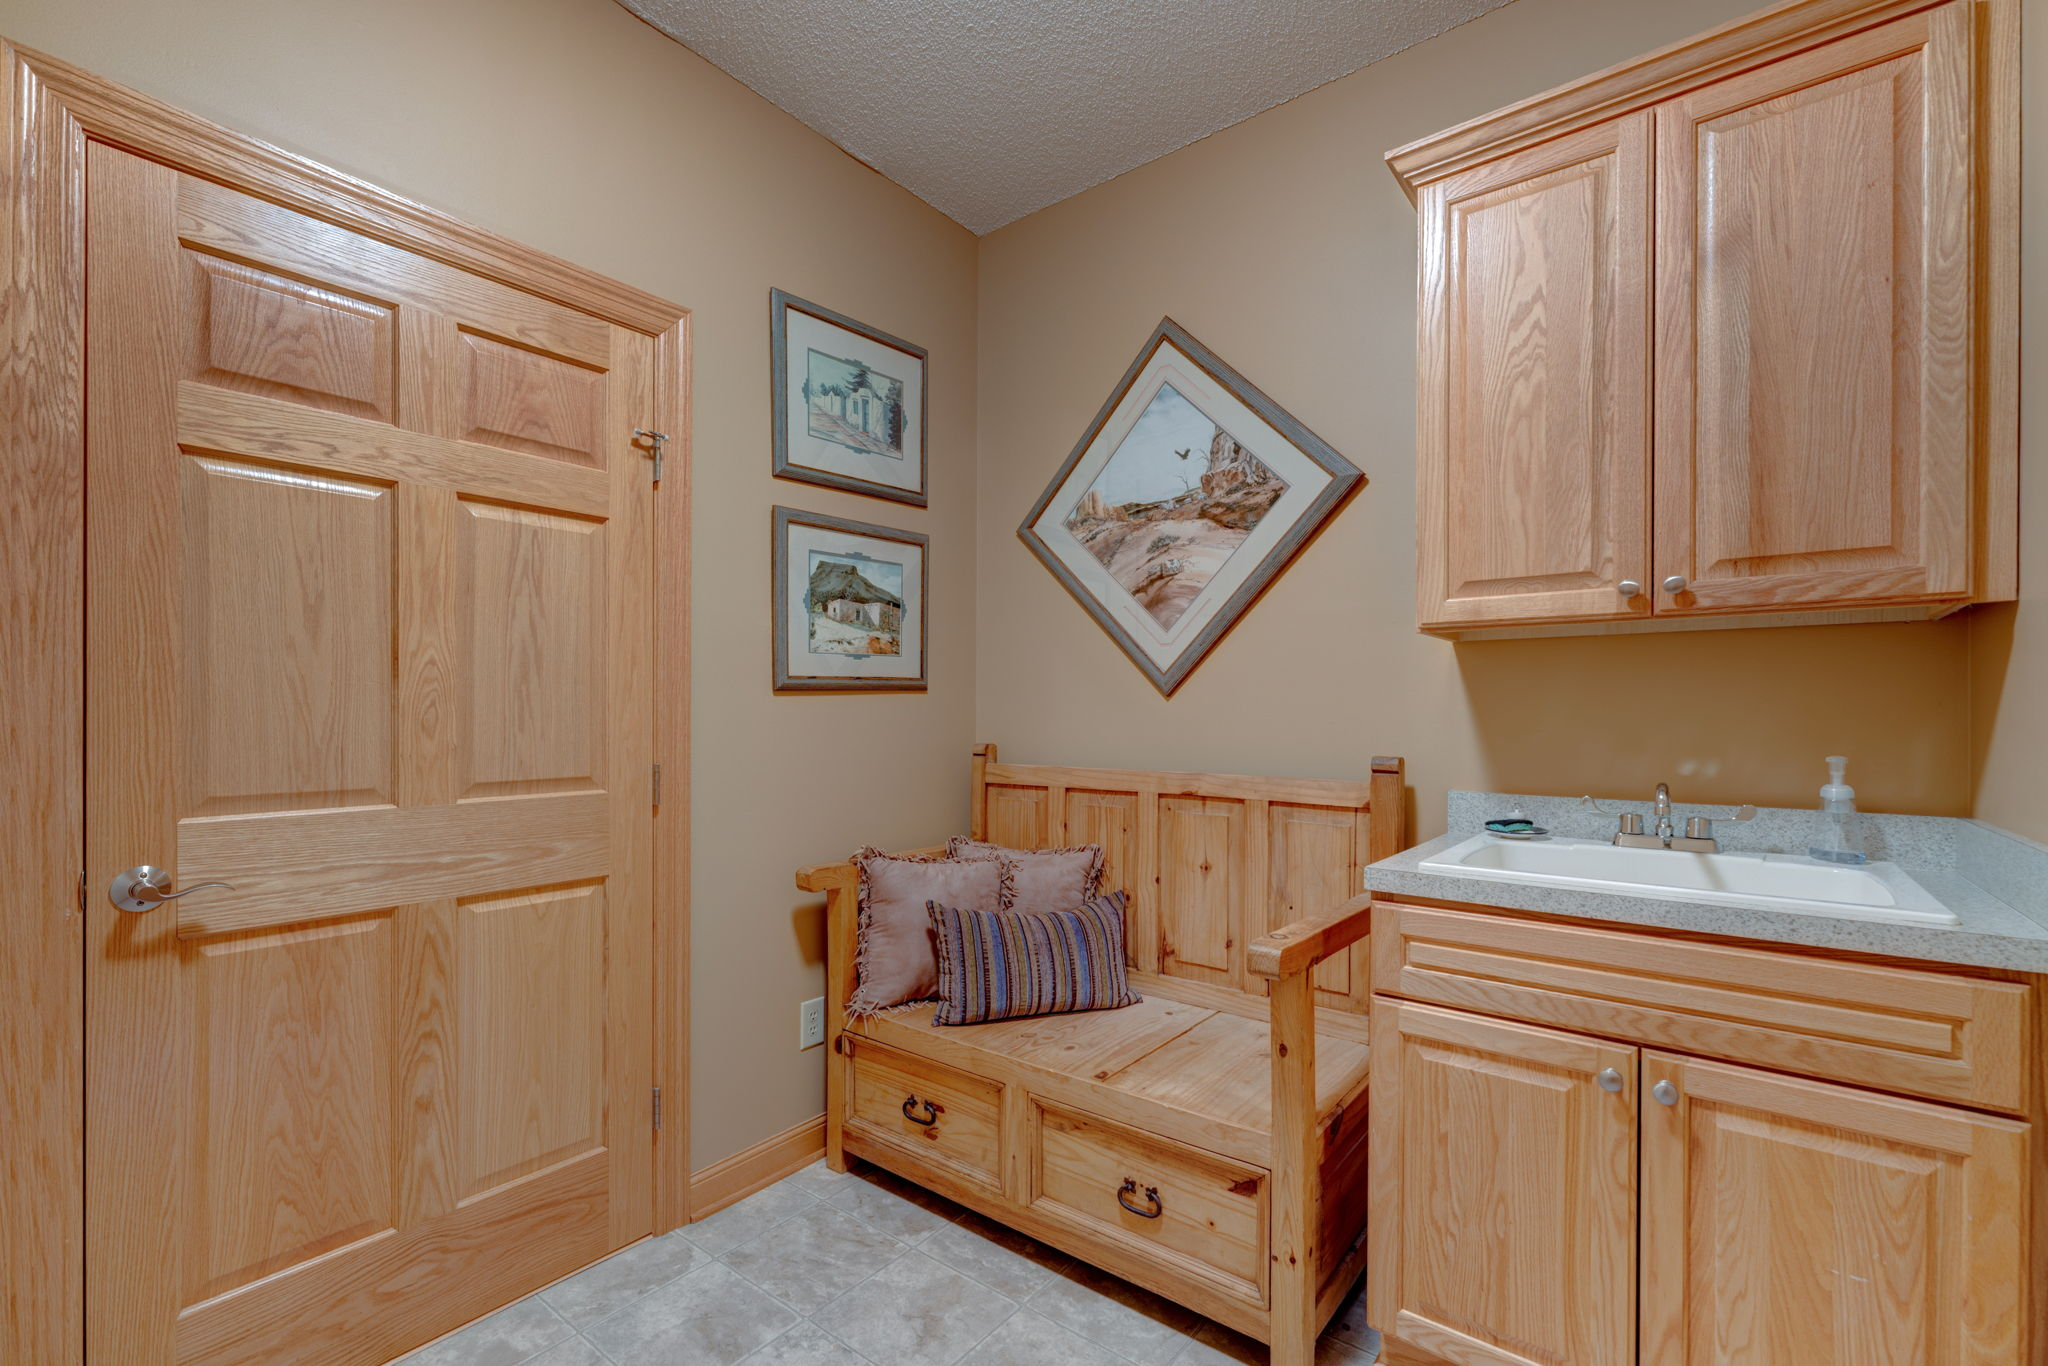 Nice sized mudroom with additional storage